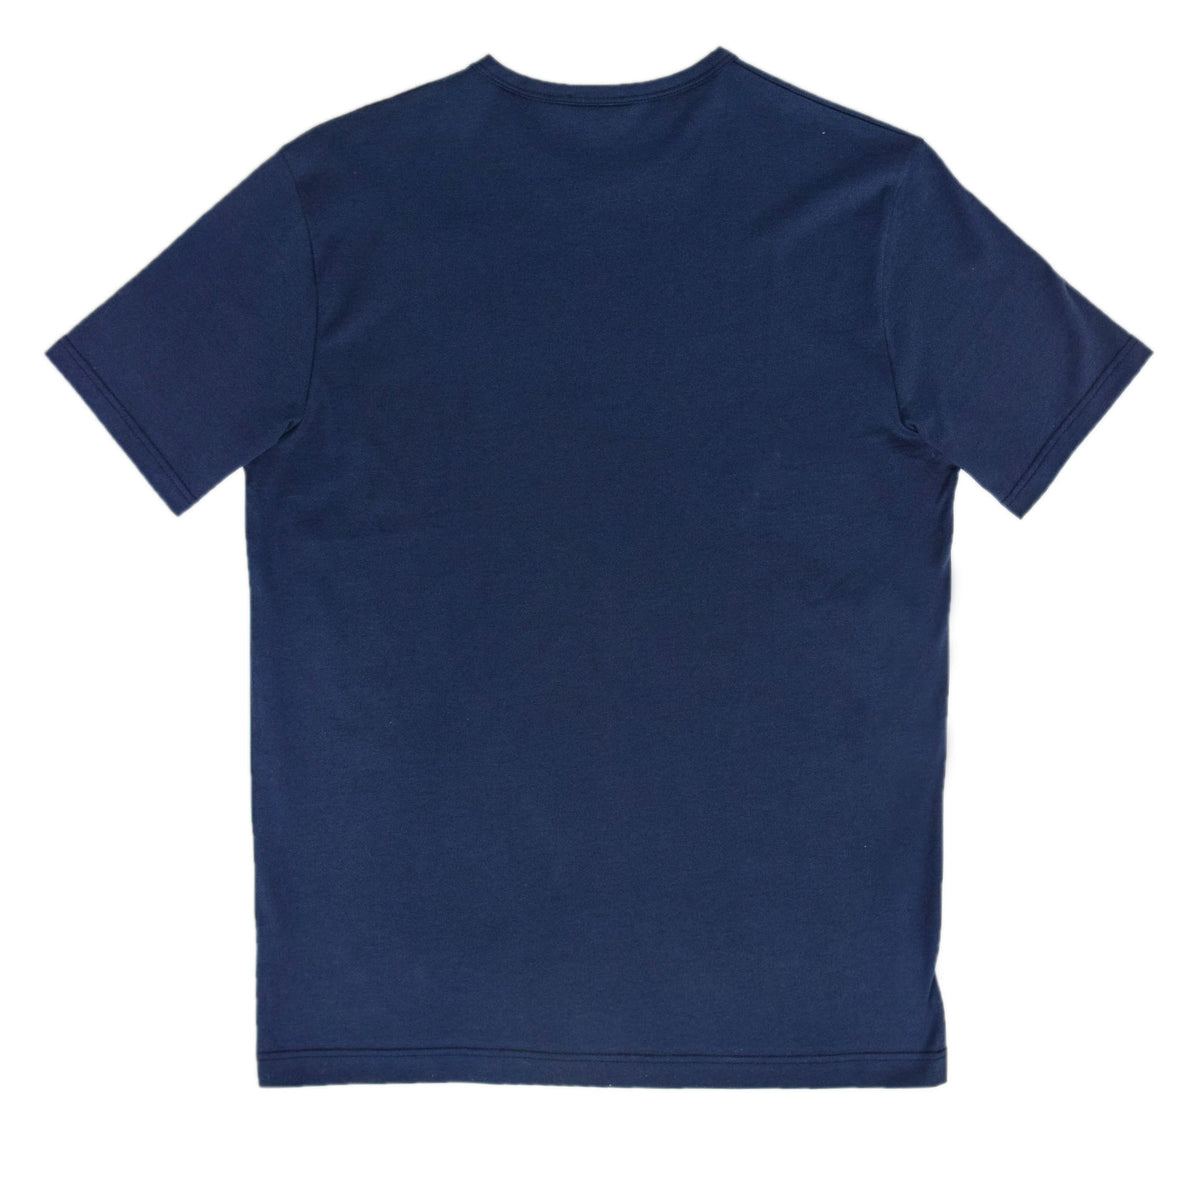 Sunspel Classic Crew T-Shirt Navy back